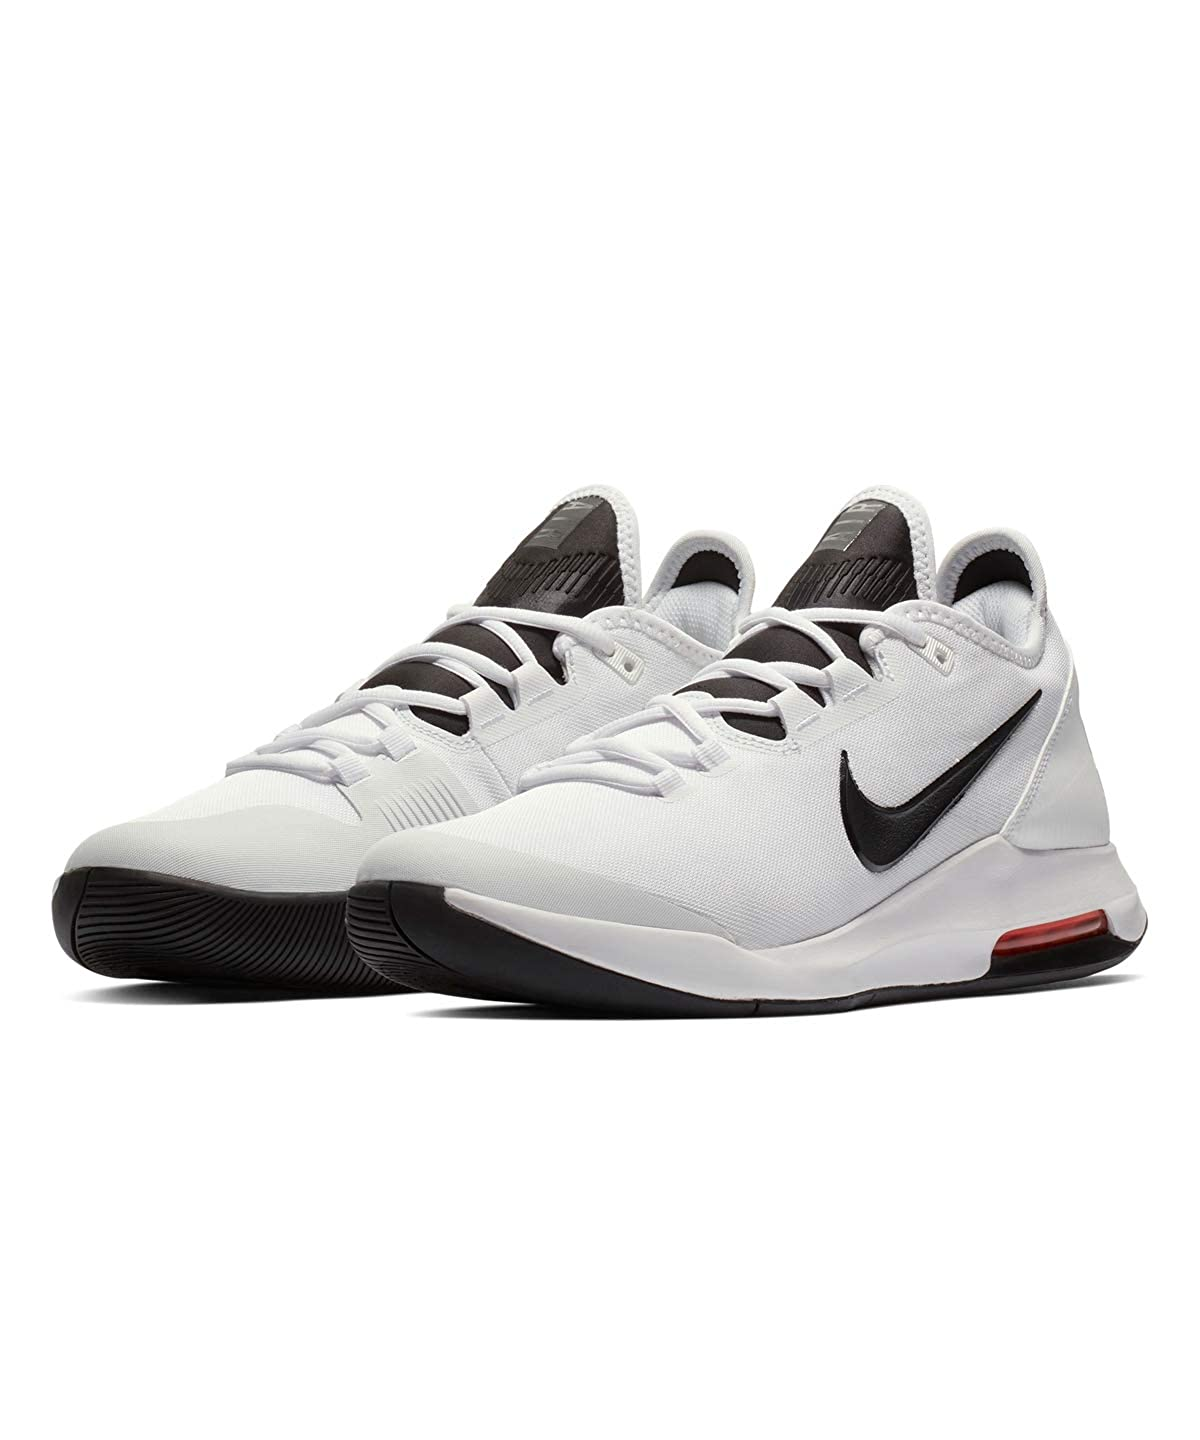 7136e89383 Nike Men's Air Max Wildcard Tennis Shoes: Amazon.ca: Shoes & Handbags